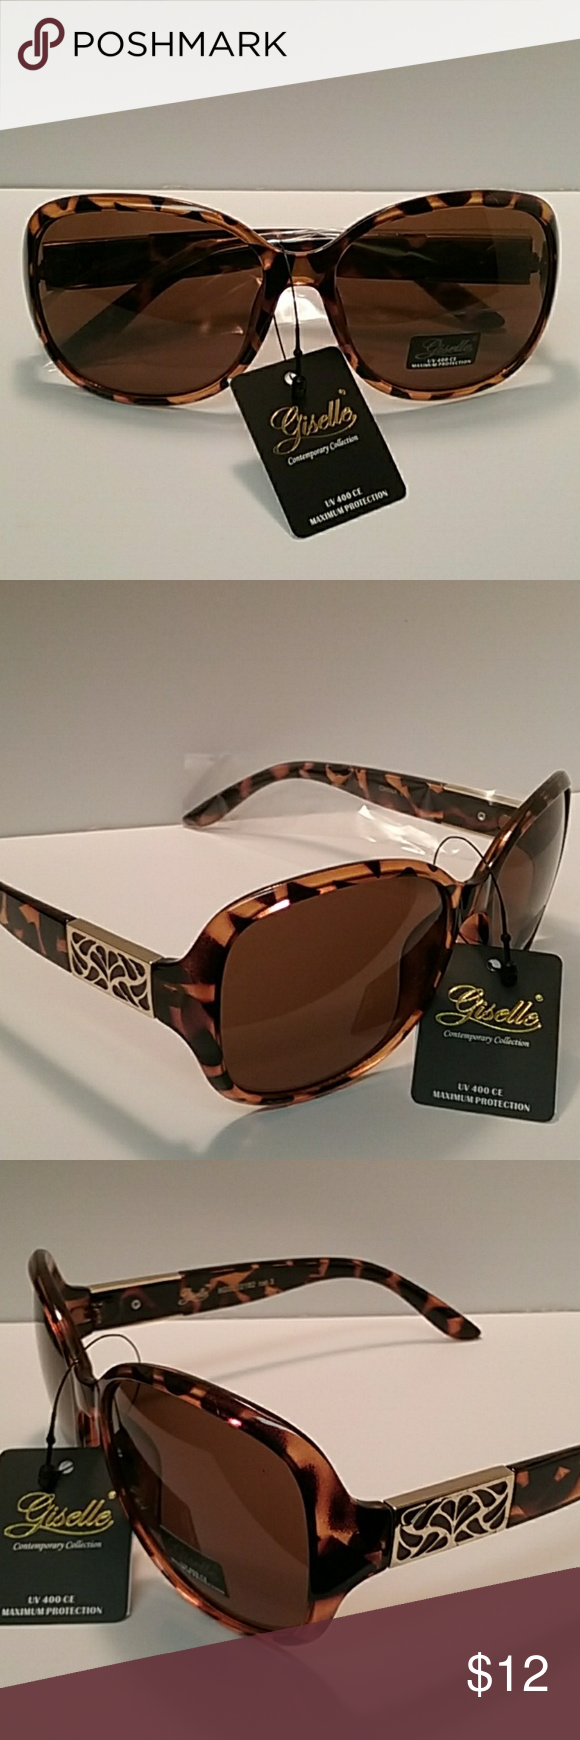 7881d23c56d24 GISELLE CONTEMPORARY COLLECTION SUNGLASSES GISELLE CONTEMPORARY COLLECTION  SUNGLASSES NWT STYLISH MULTI COLOR PLASTIC FRAME GOLD TONE